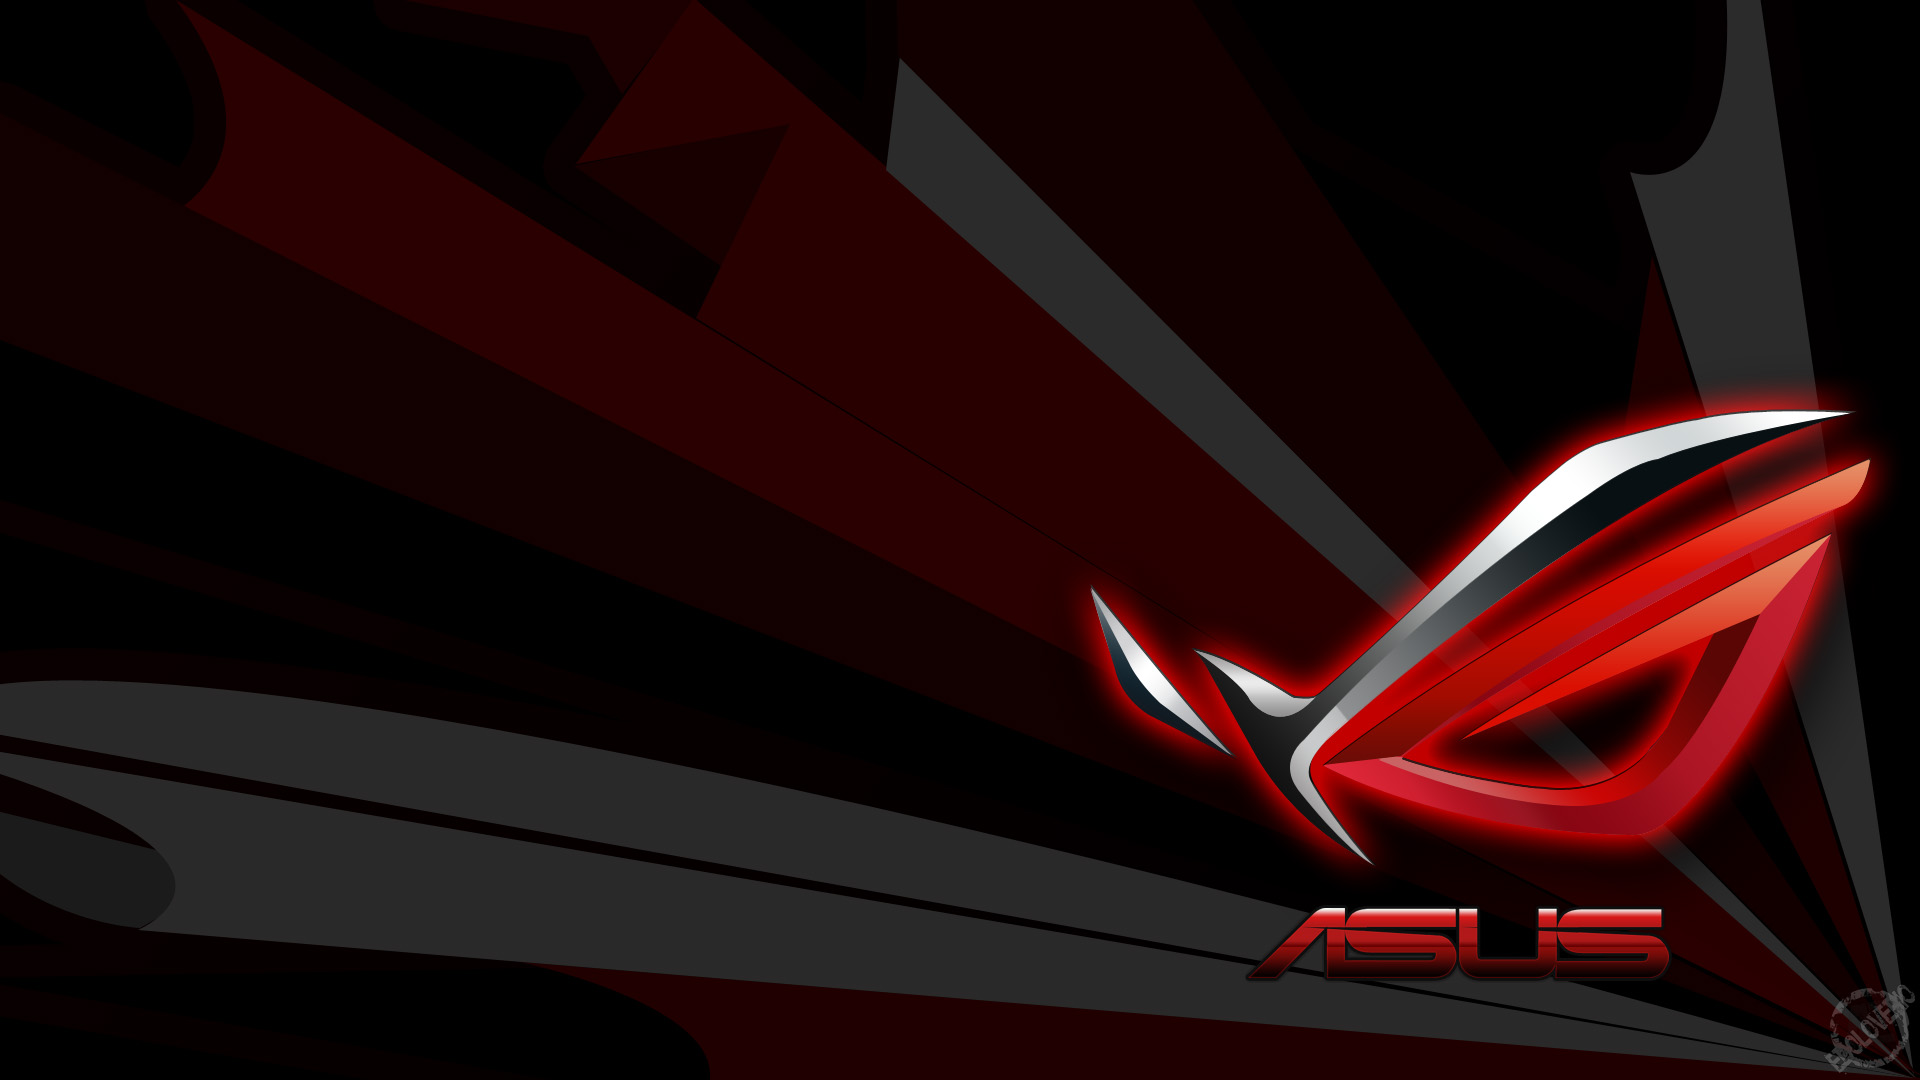 Asus HD Wallpaper | Background Image | 1920x1080 | ID:177602 - Wallpaper Abyss